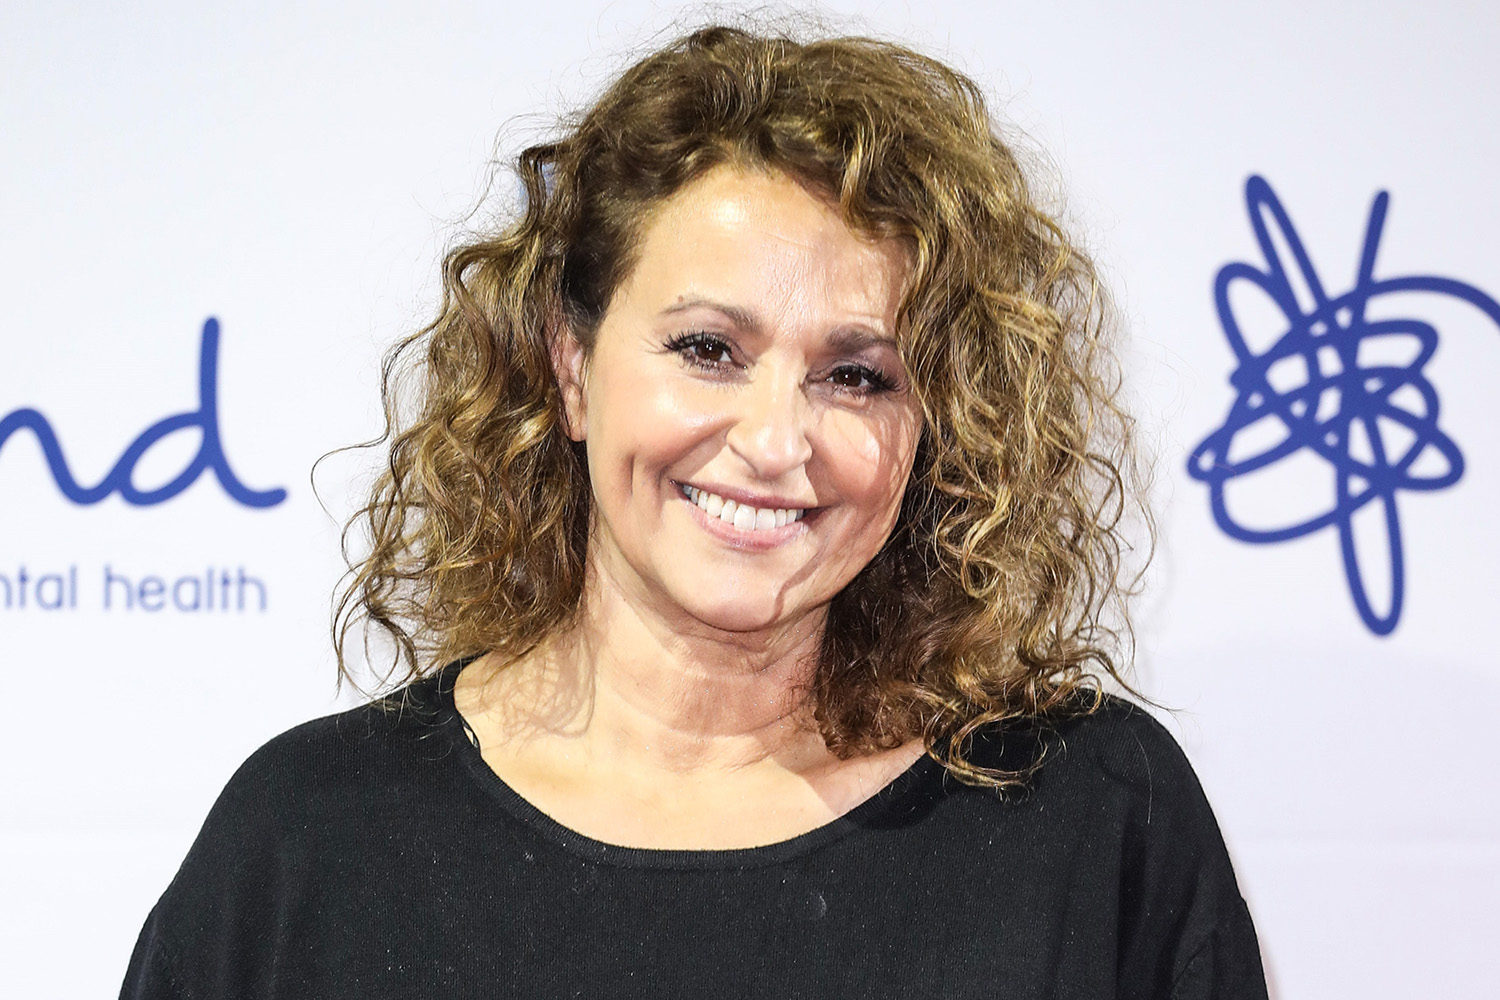 Nadia Sawalha screams as she unveils grey roots during lockdown